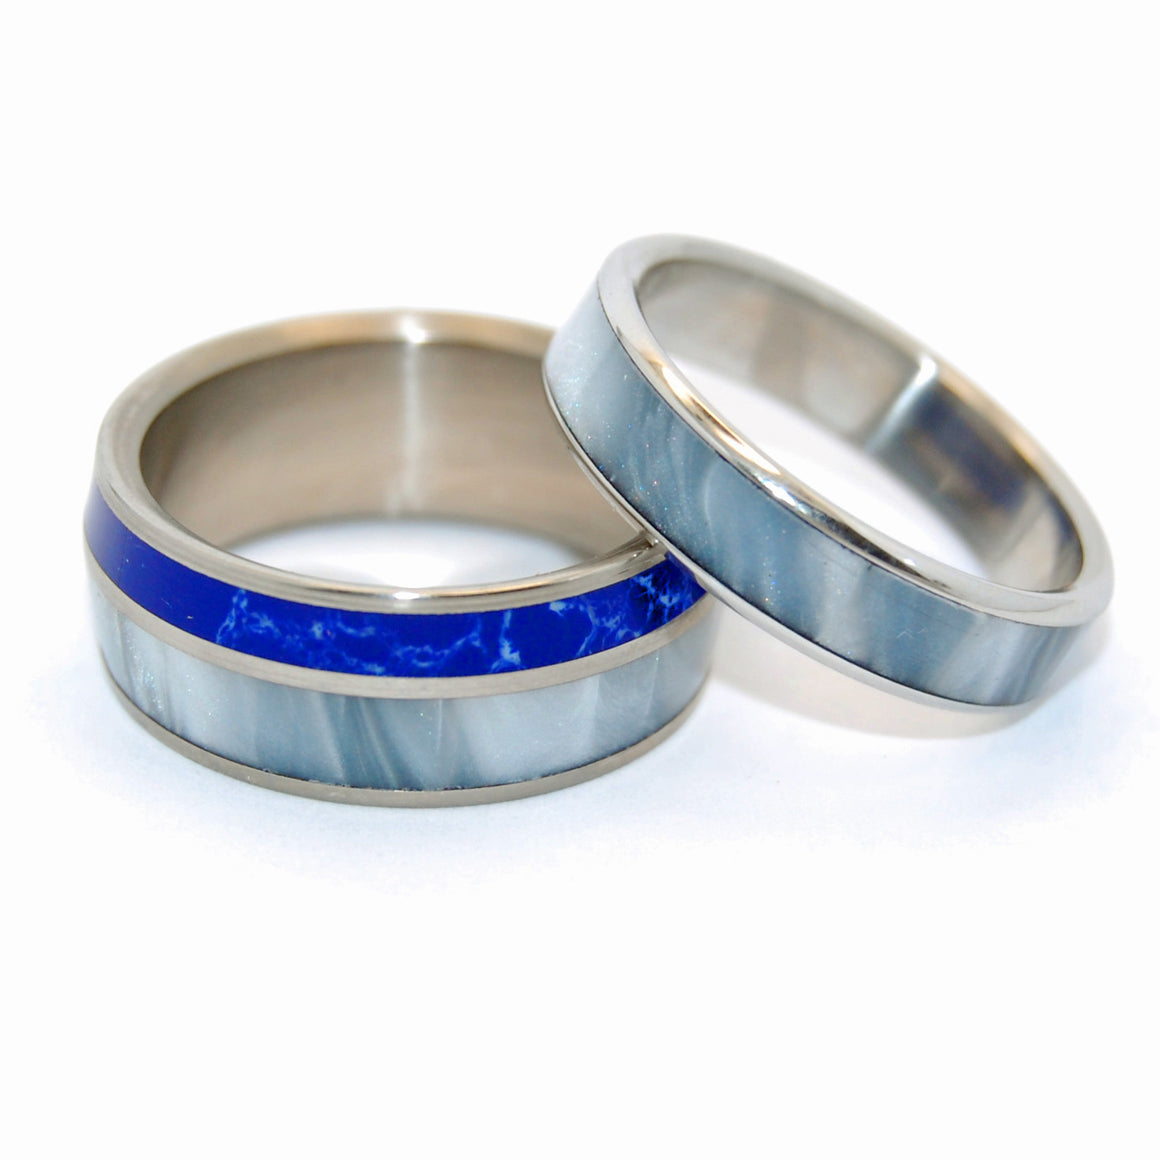 We'll Always Be in the Beautiful Space Below the Fog | His and Hers Titanium Wedding Ring Set